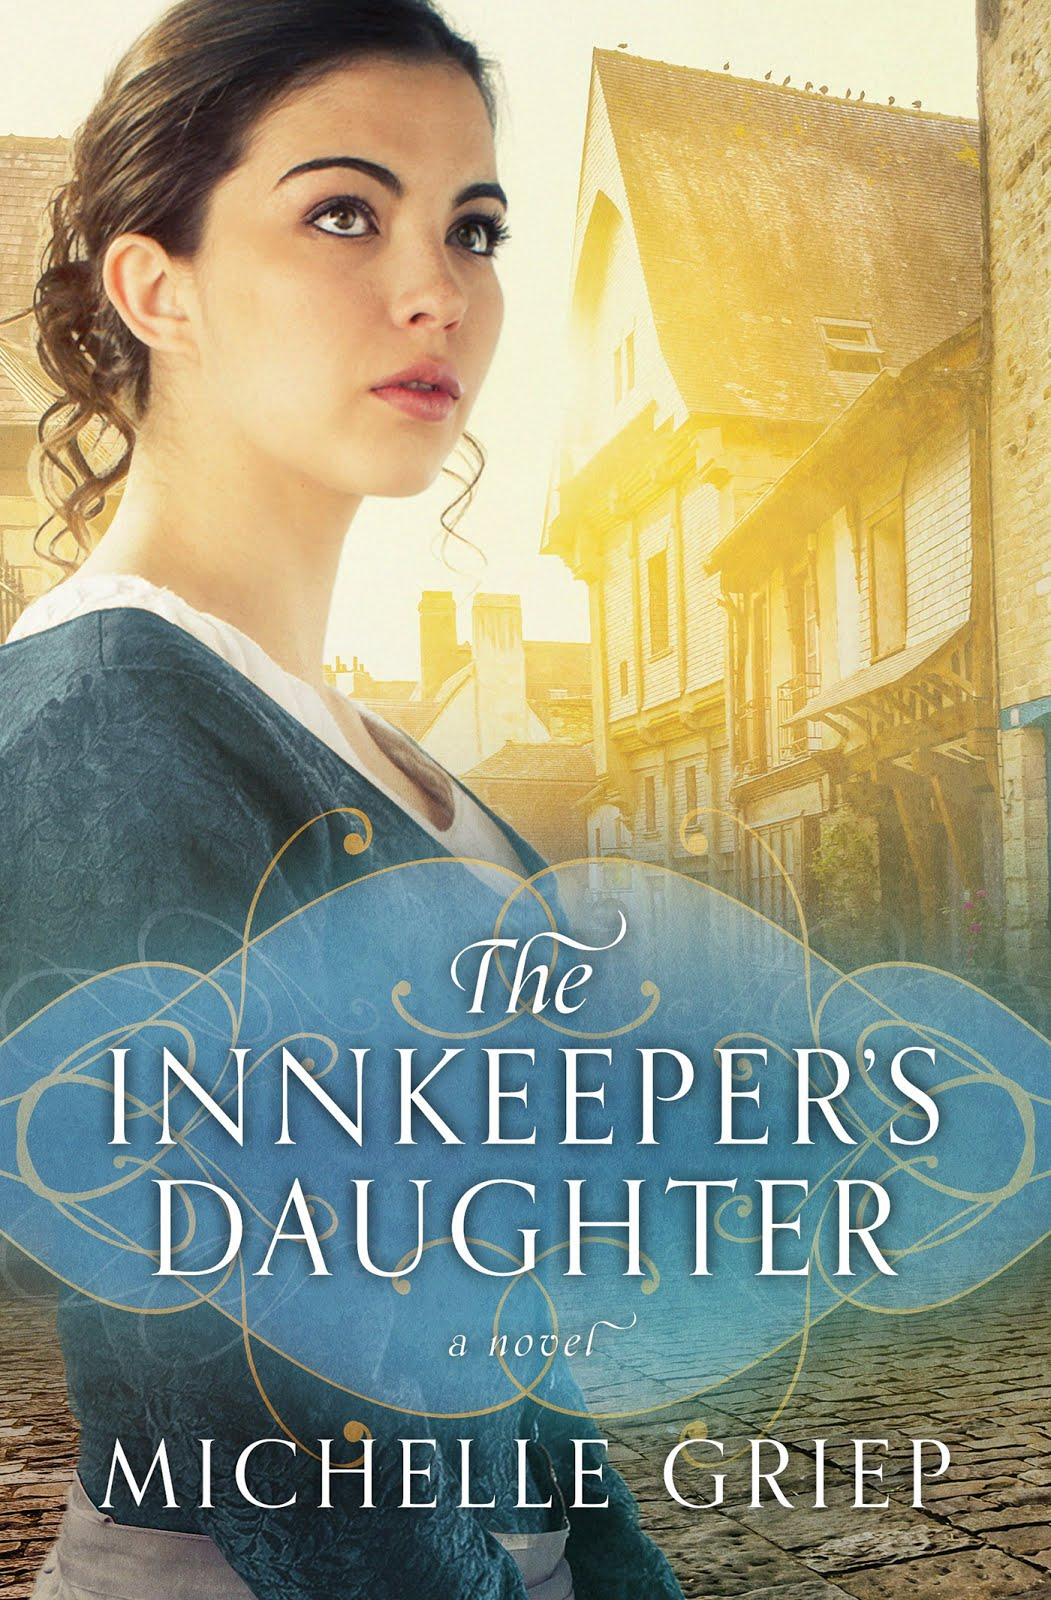 The Innkeeper's Daughter Book Tour